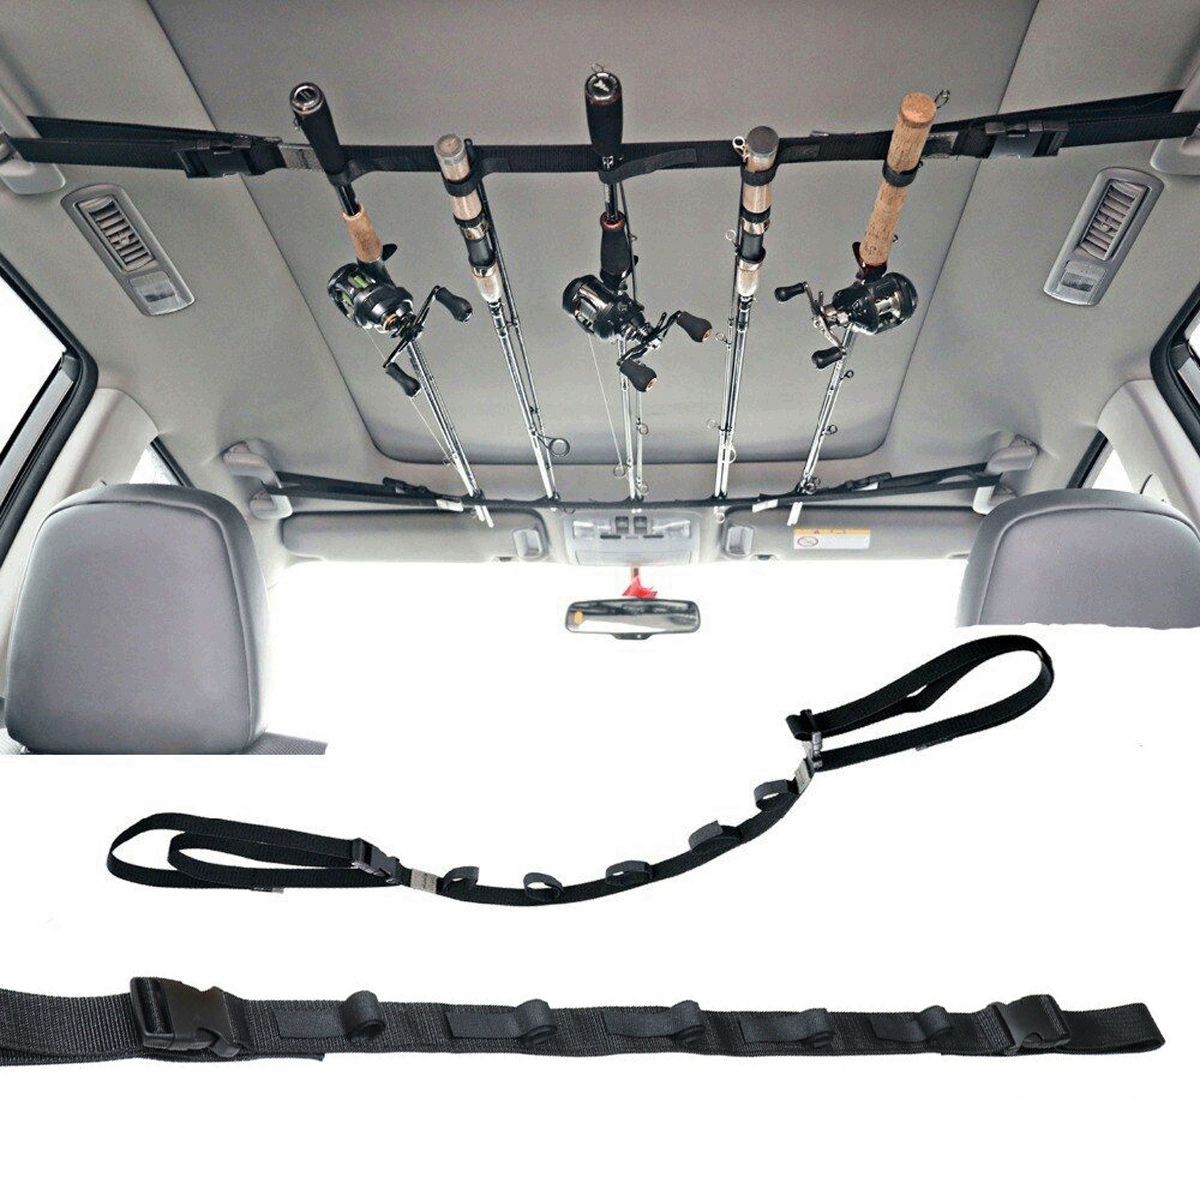 5 Holes Car Fishing Rod Carrier Belt Rod Holder Strap with Tie Suspenders US